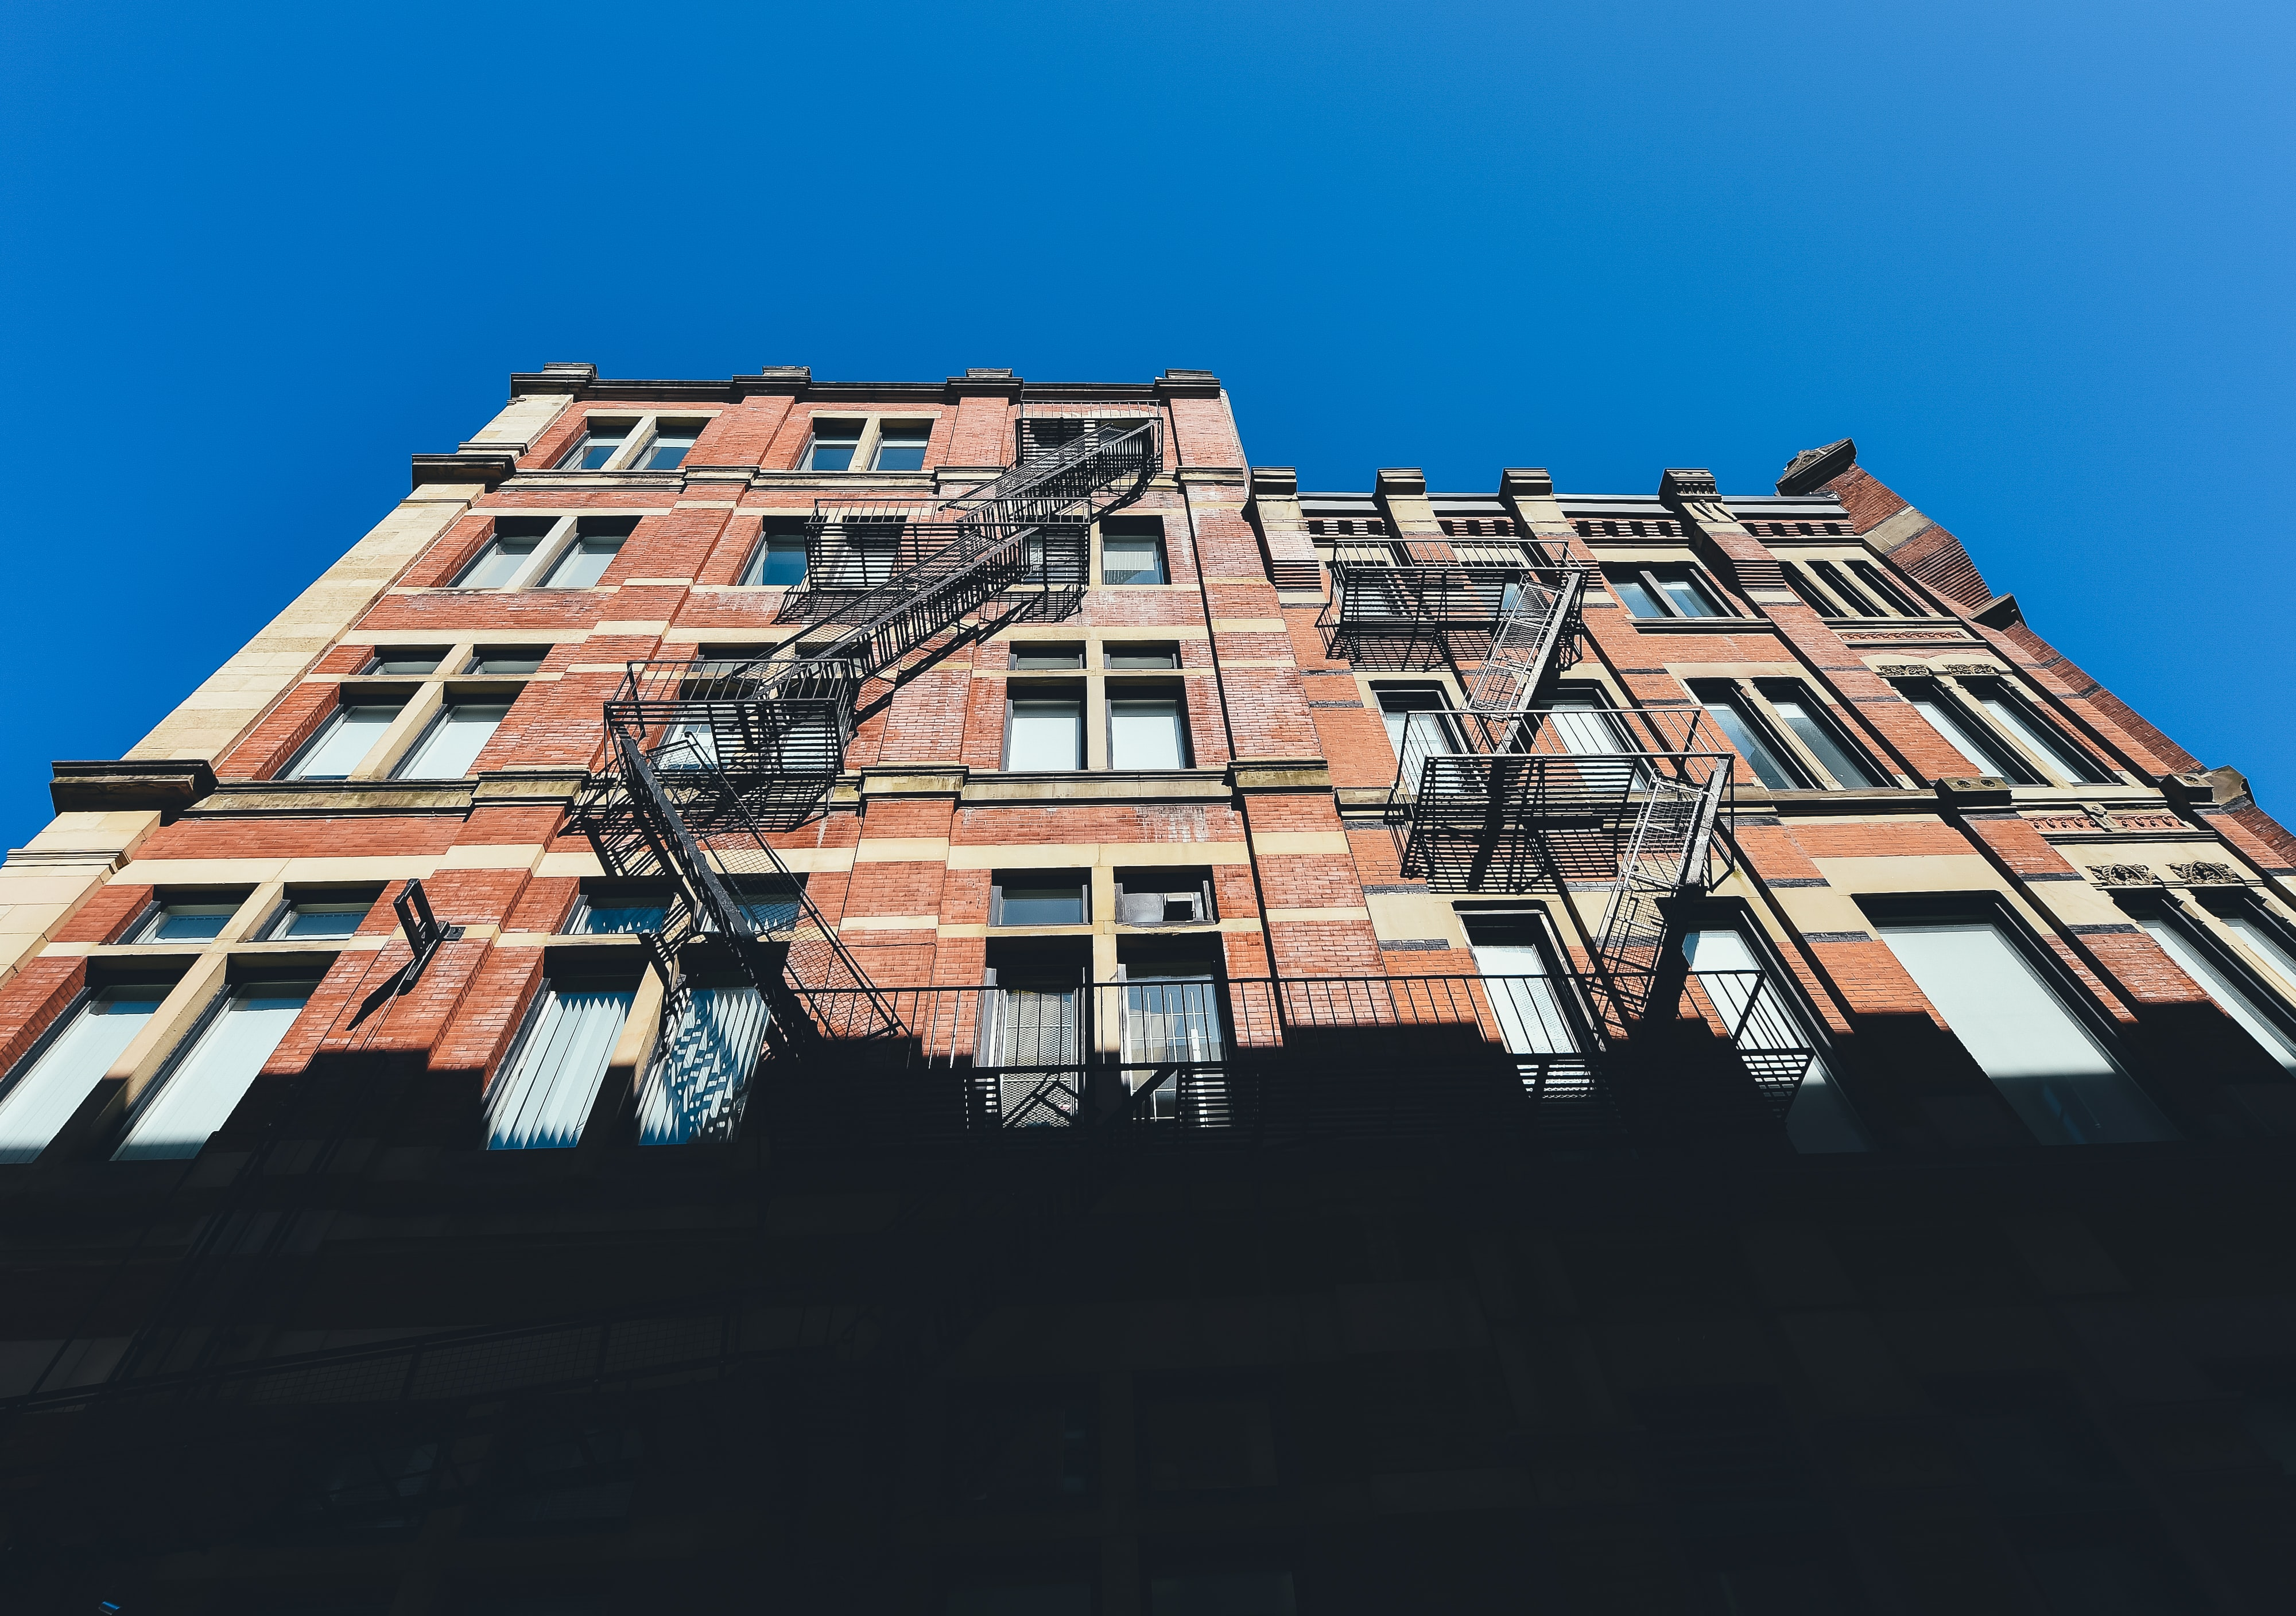 A brick residential building with fire escapes against a blue sky in Montreal